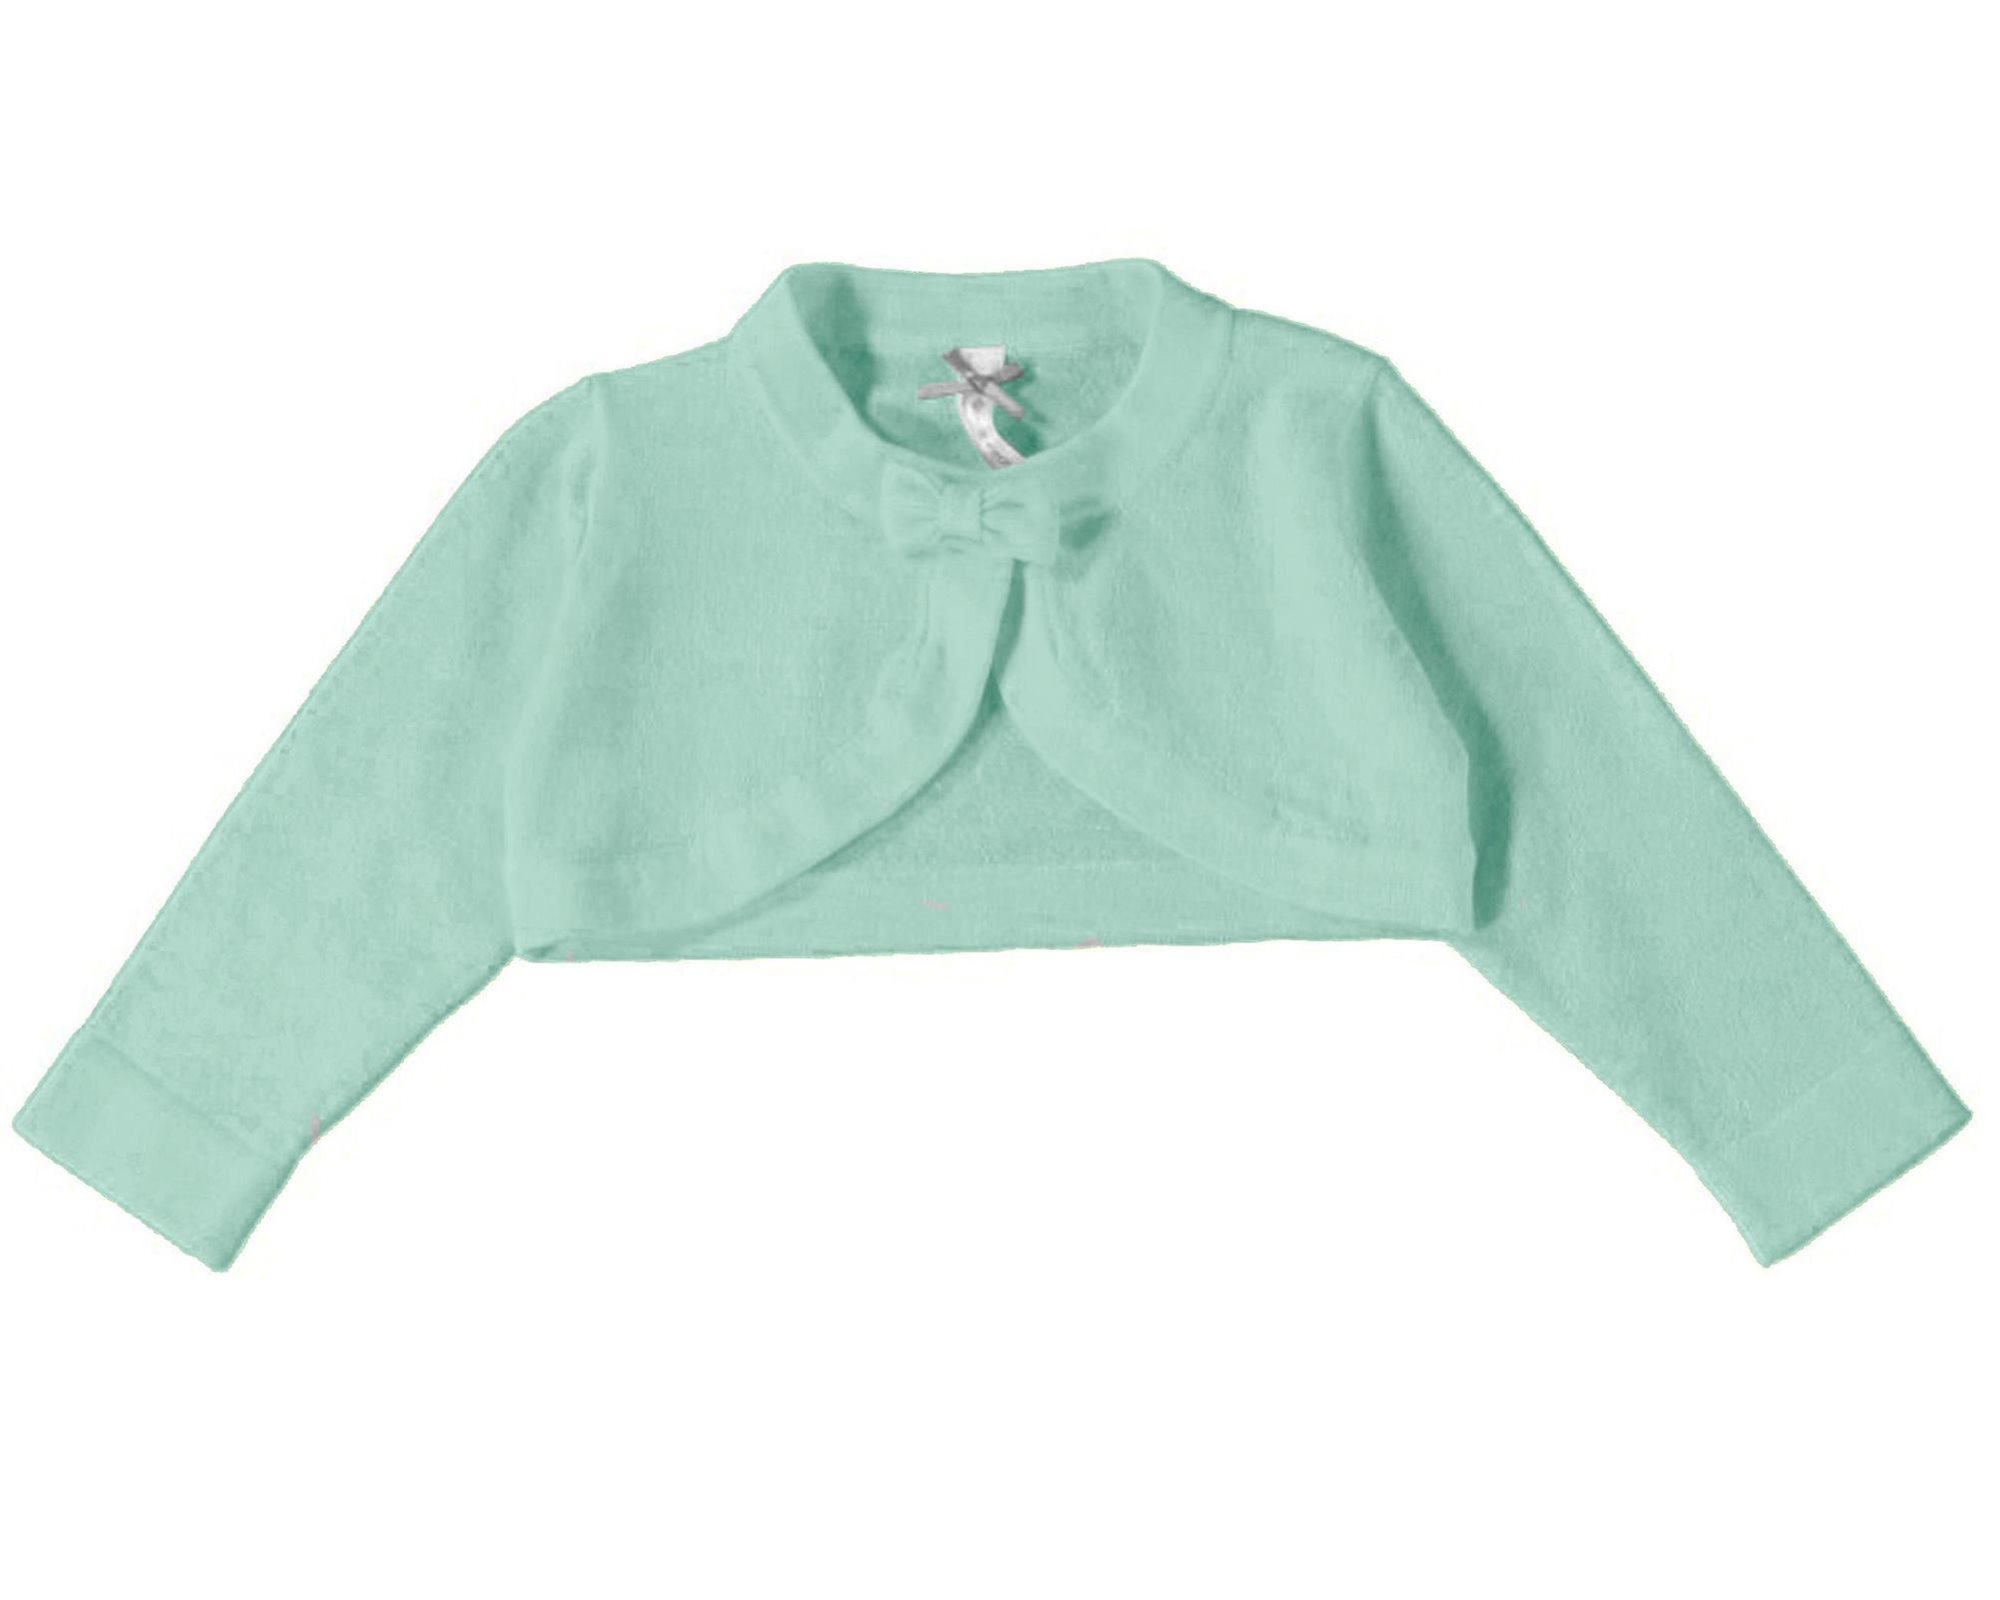 Mint Green Bolero Images - Reverse Search